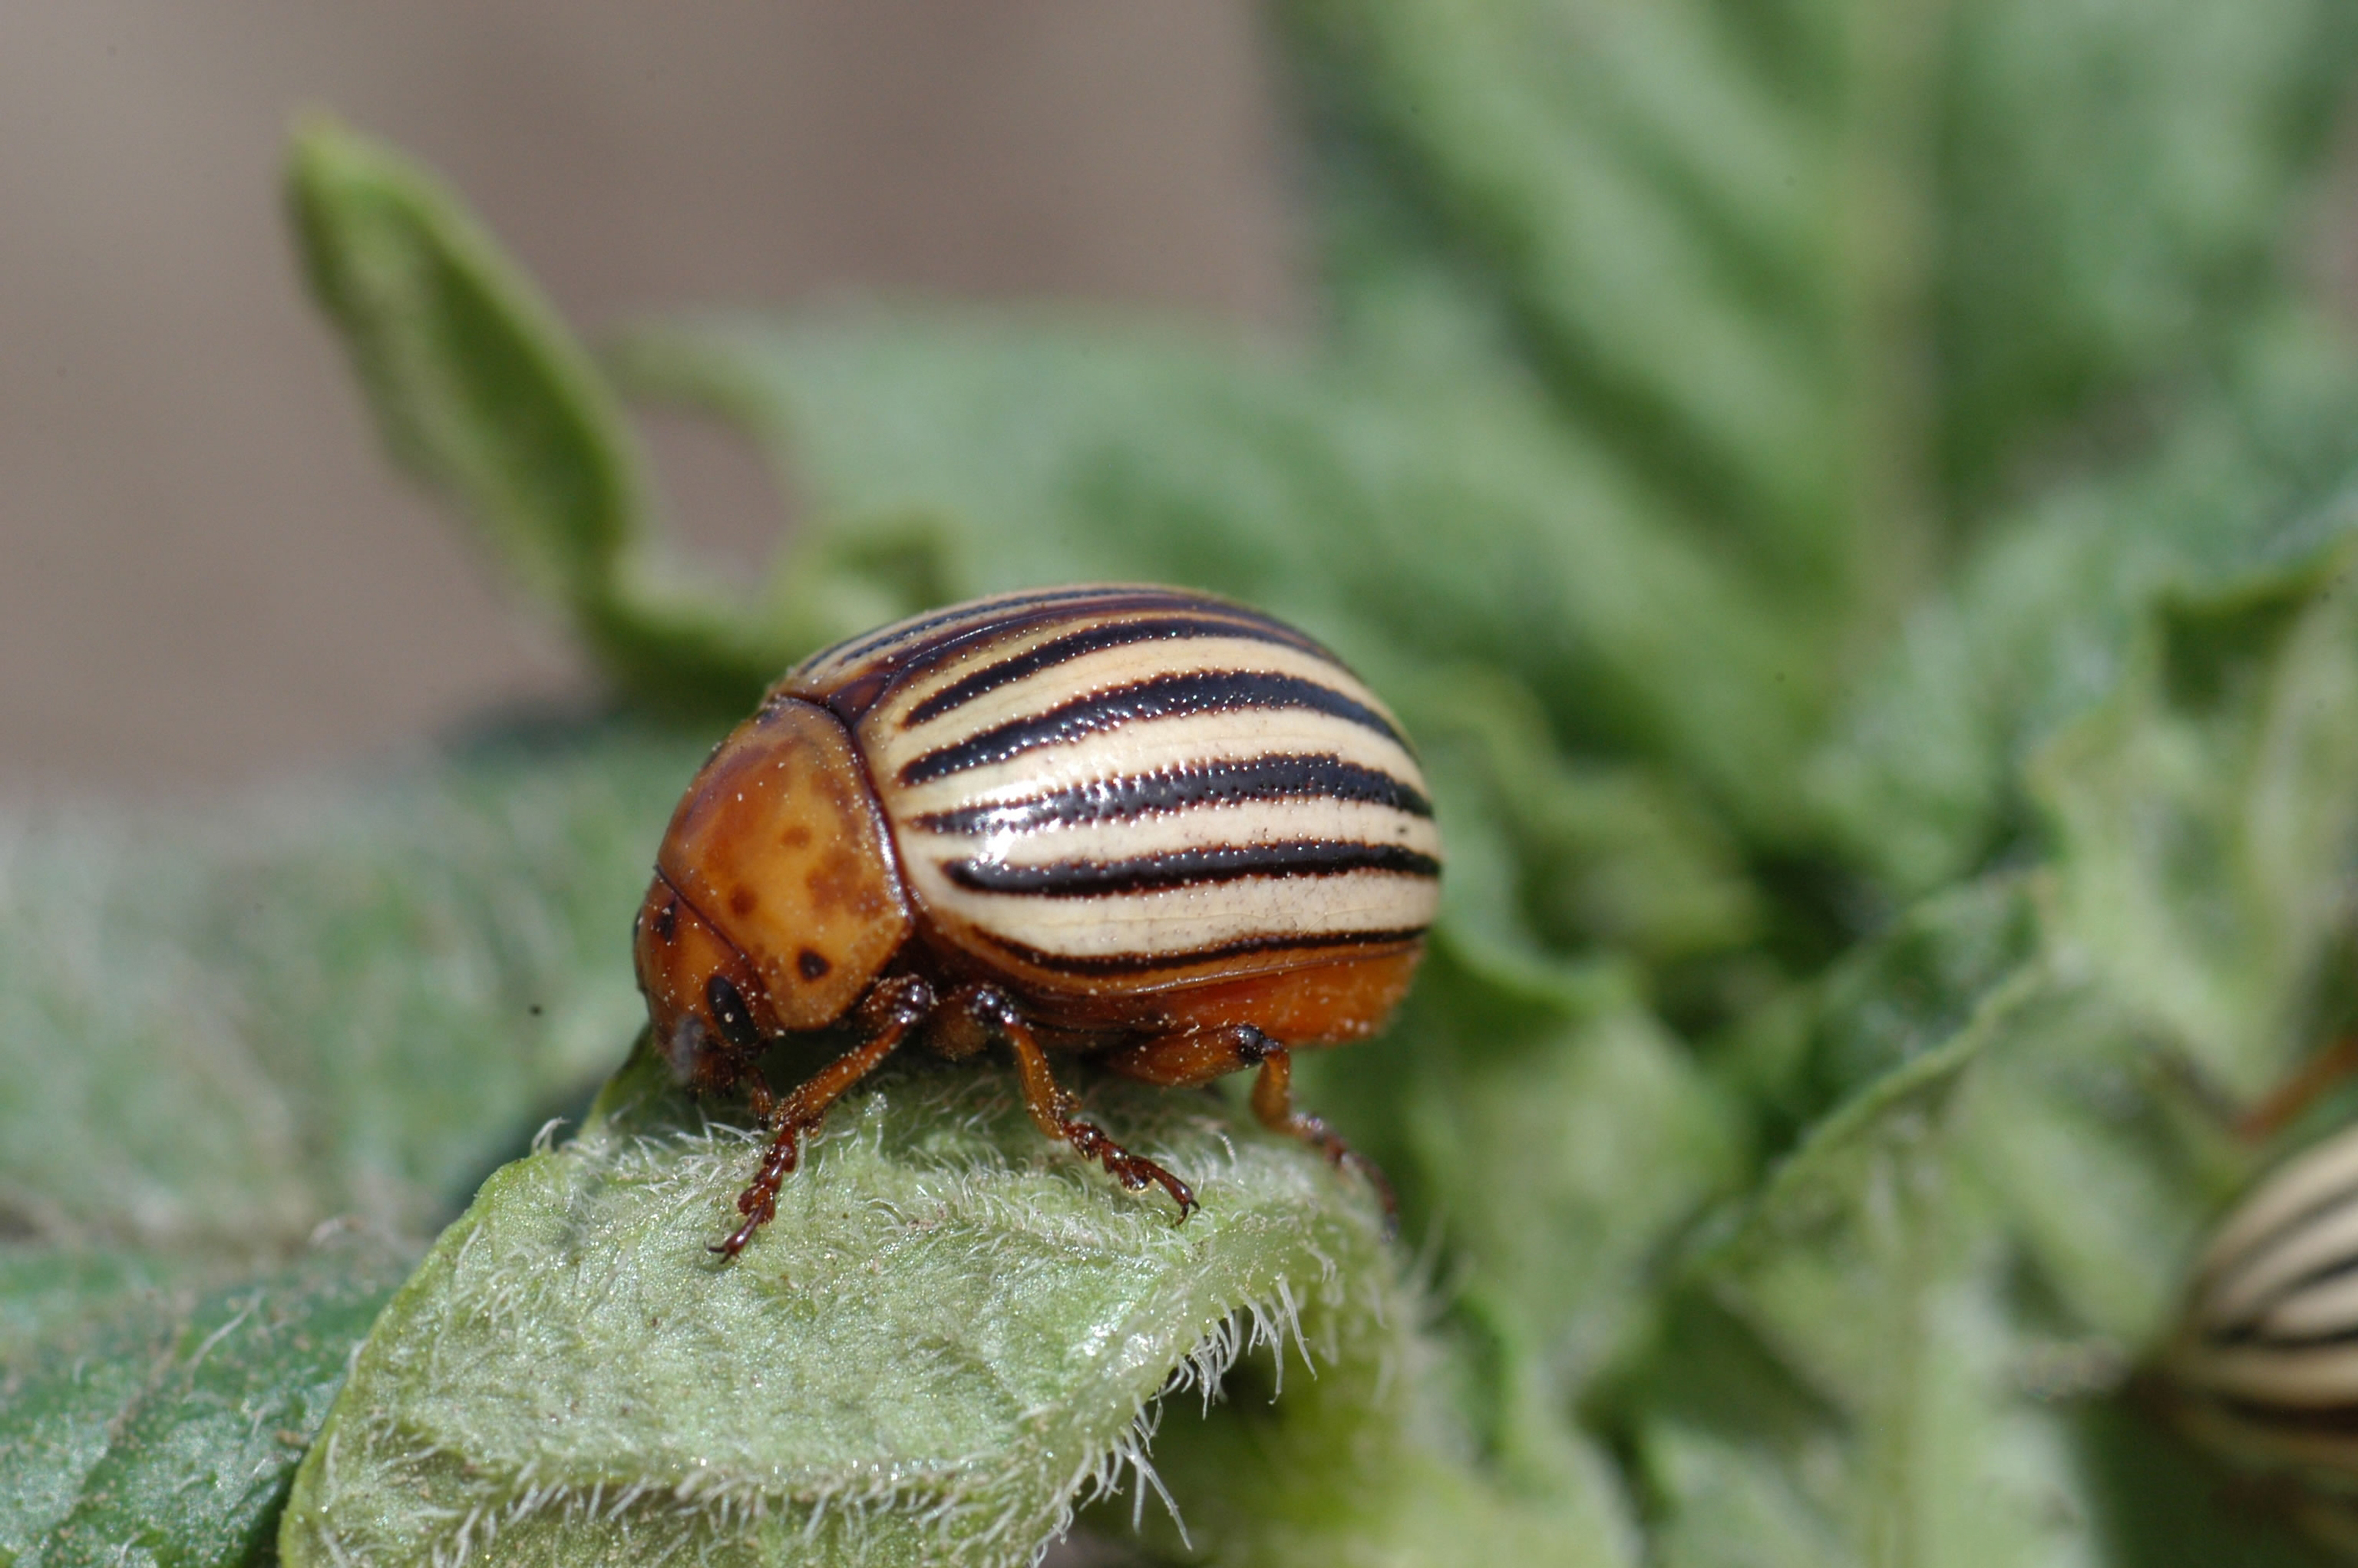 Colorado potato beetles (CPB) have black and yellow stripes and a shape similar to ladybugs